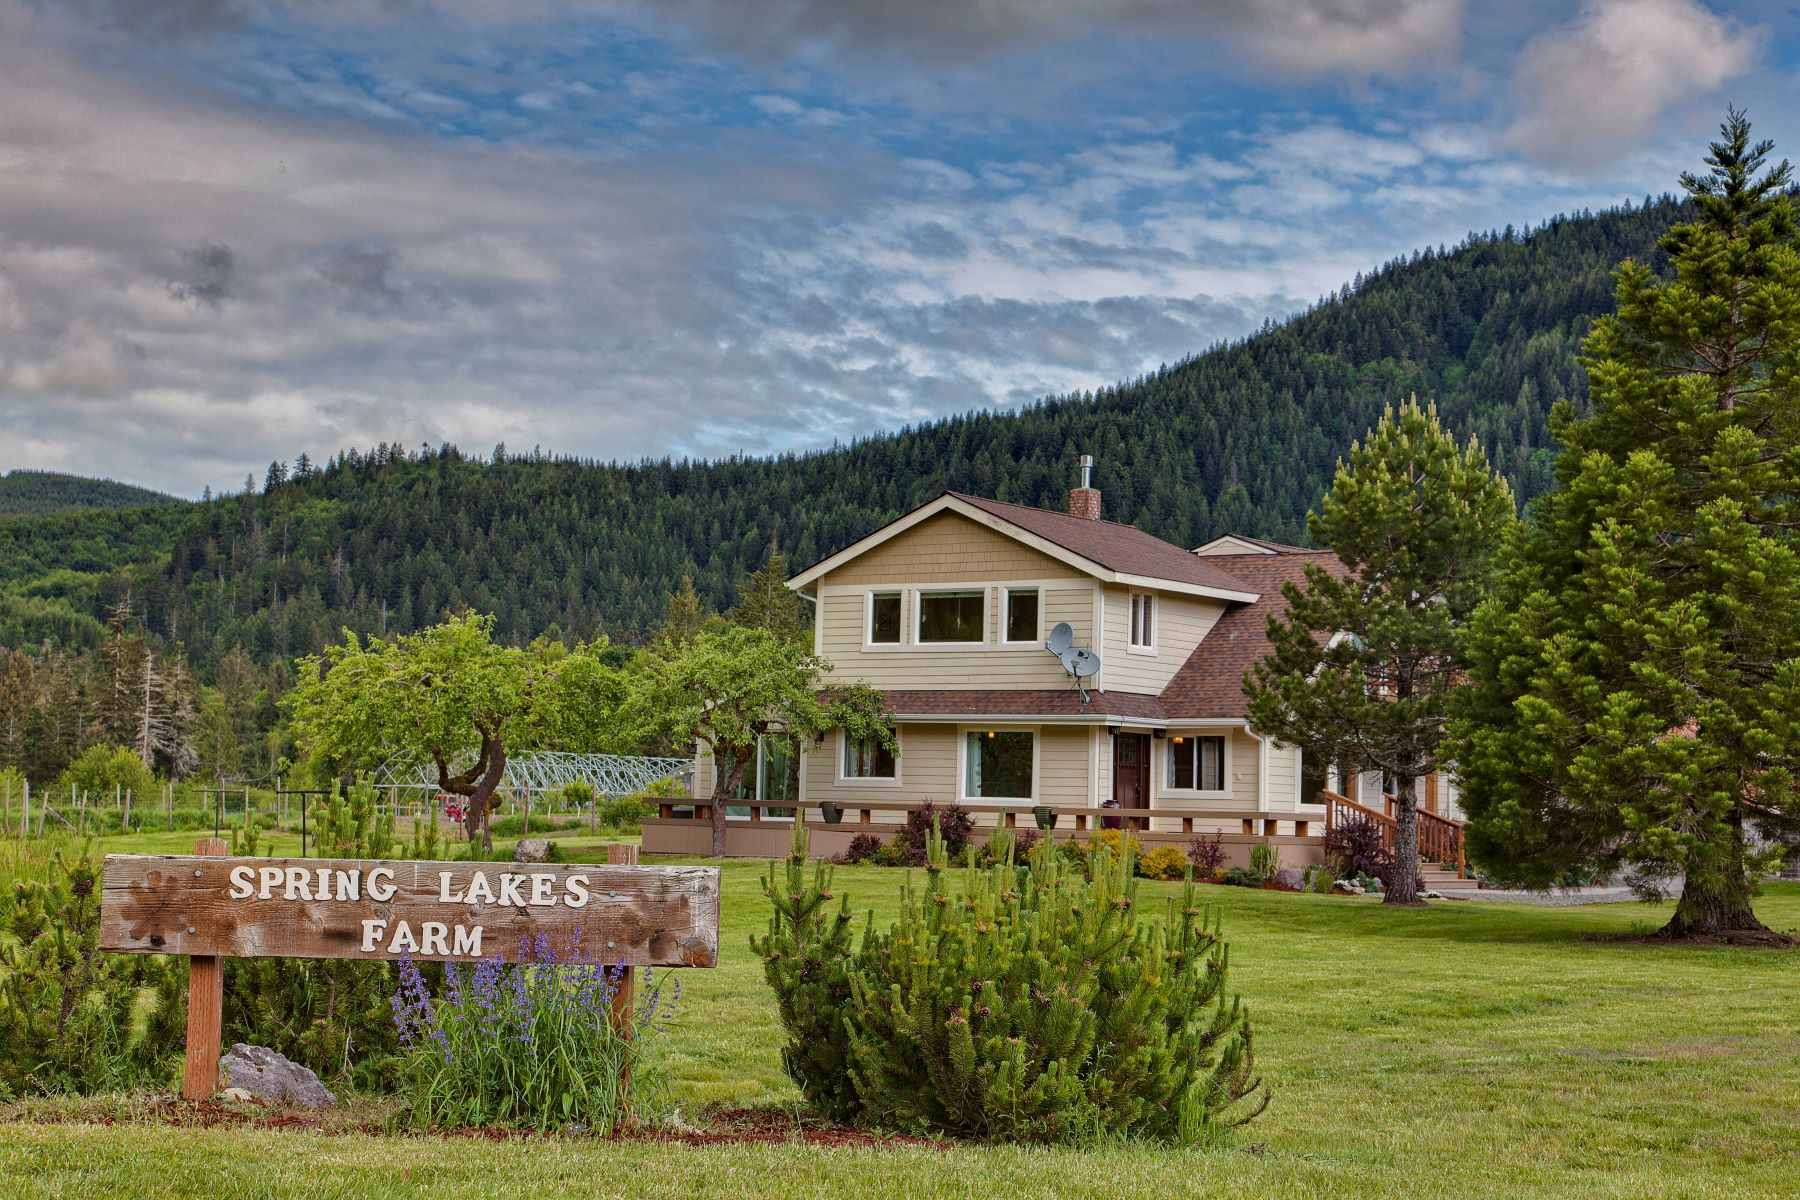 Single Family Home for Sale at Spring Lakes Farm 237477 W Highway 101 Port Angeles, Washington 98363 United States